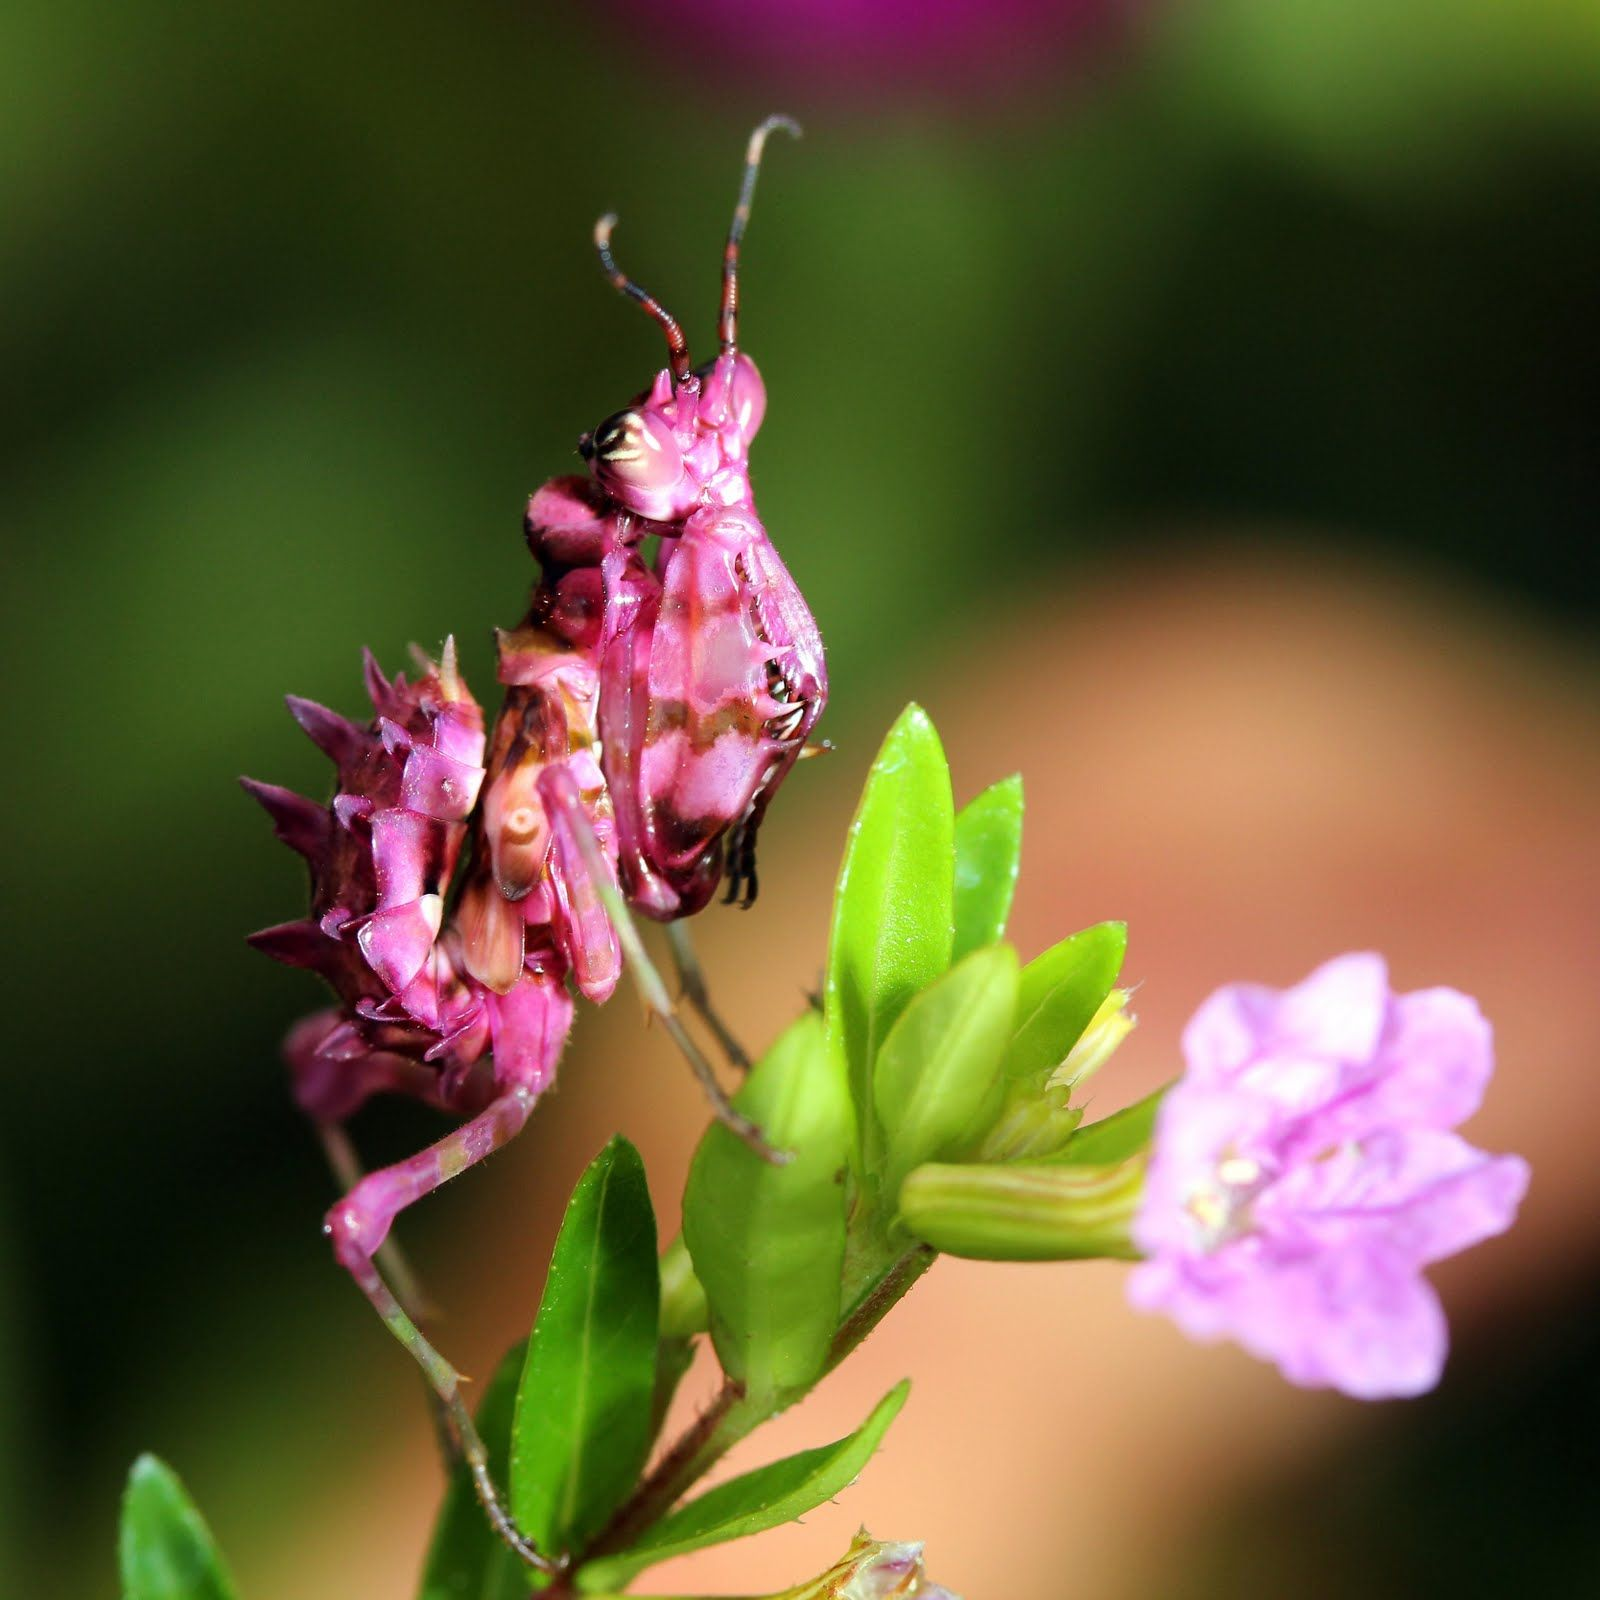 Gambian spotted eye flower mantis pink flower mantis spiny gambian spotted eye flower mantis pink flower mantis spiny flower mantis nymphs dhlflorist Image collections